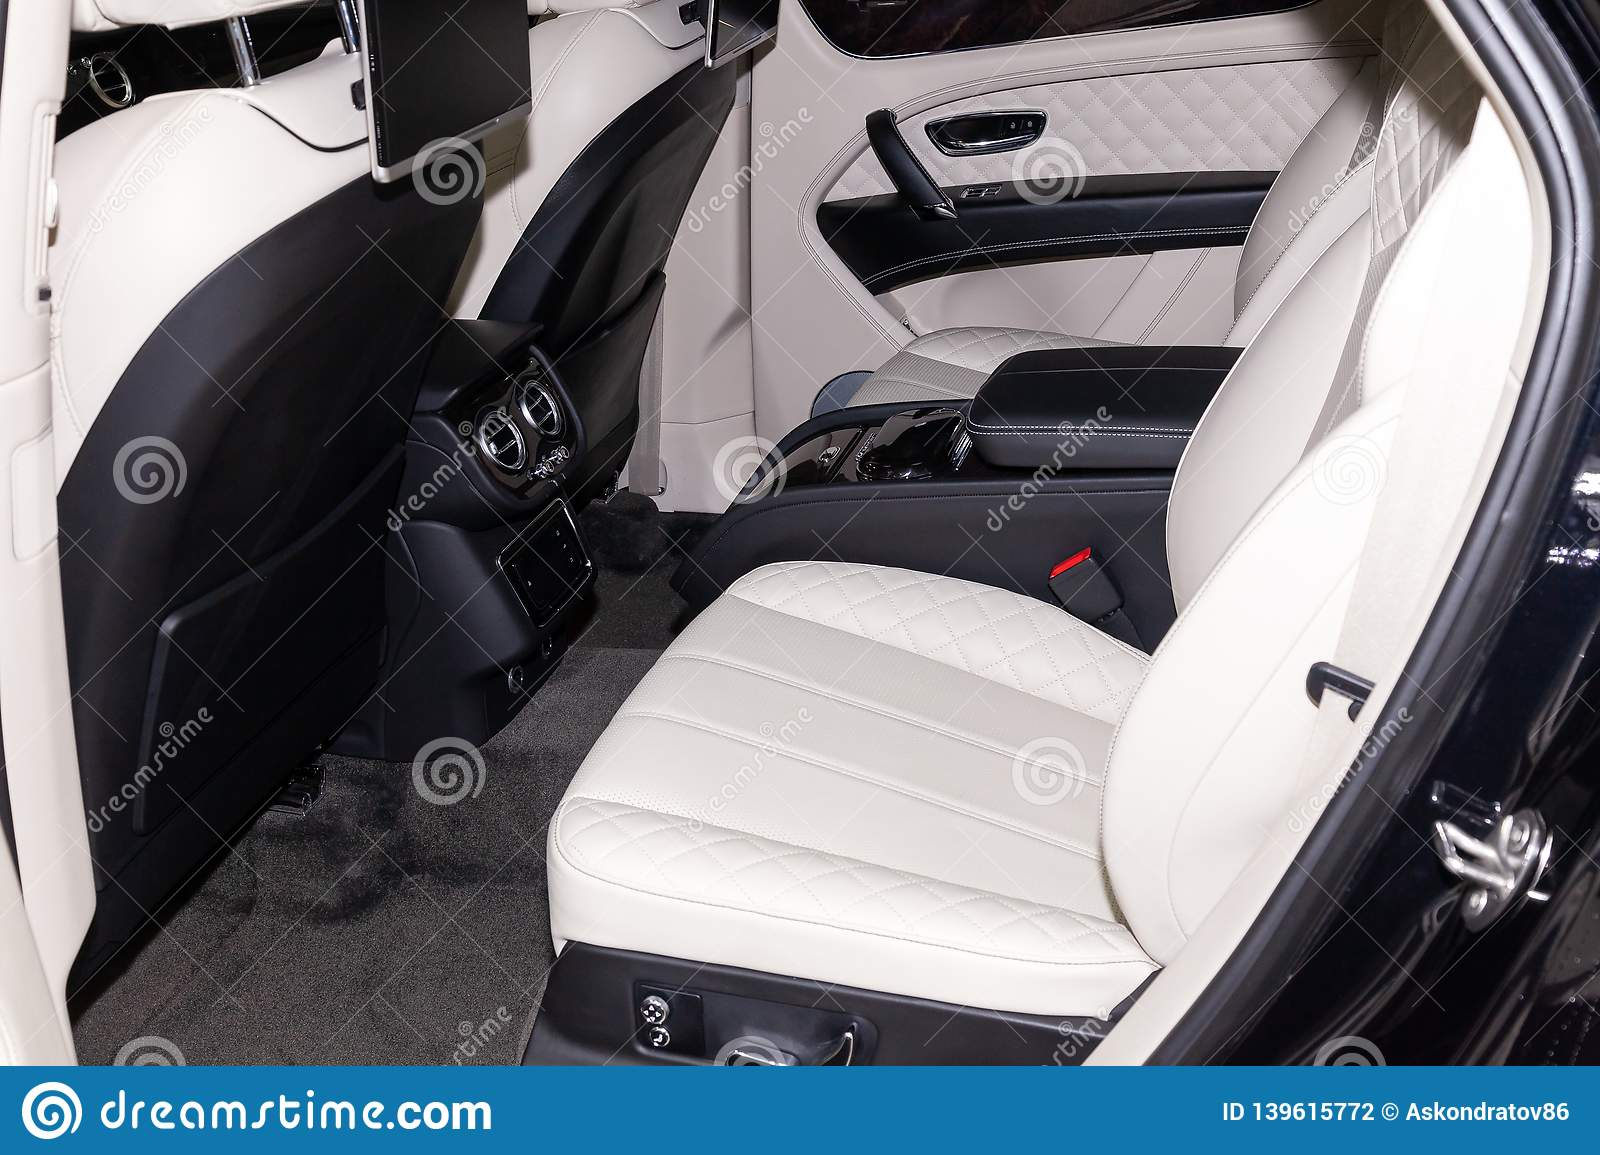 Interior View With Rear Seats Of Luxury Very Expensive New Black Bentley Bentayga Car Stands In The Washing Box Waiting For Repair Editorial Photography Image Of Gear Bentayga 139615772